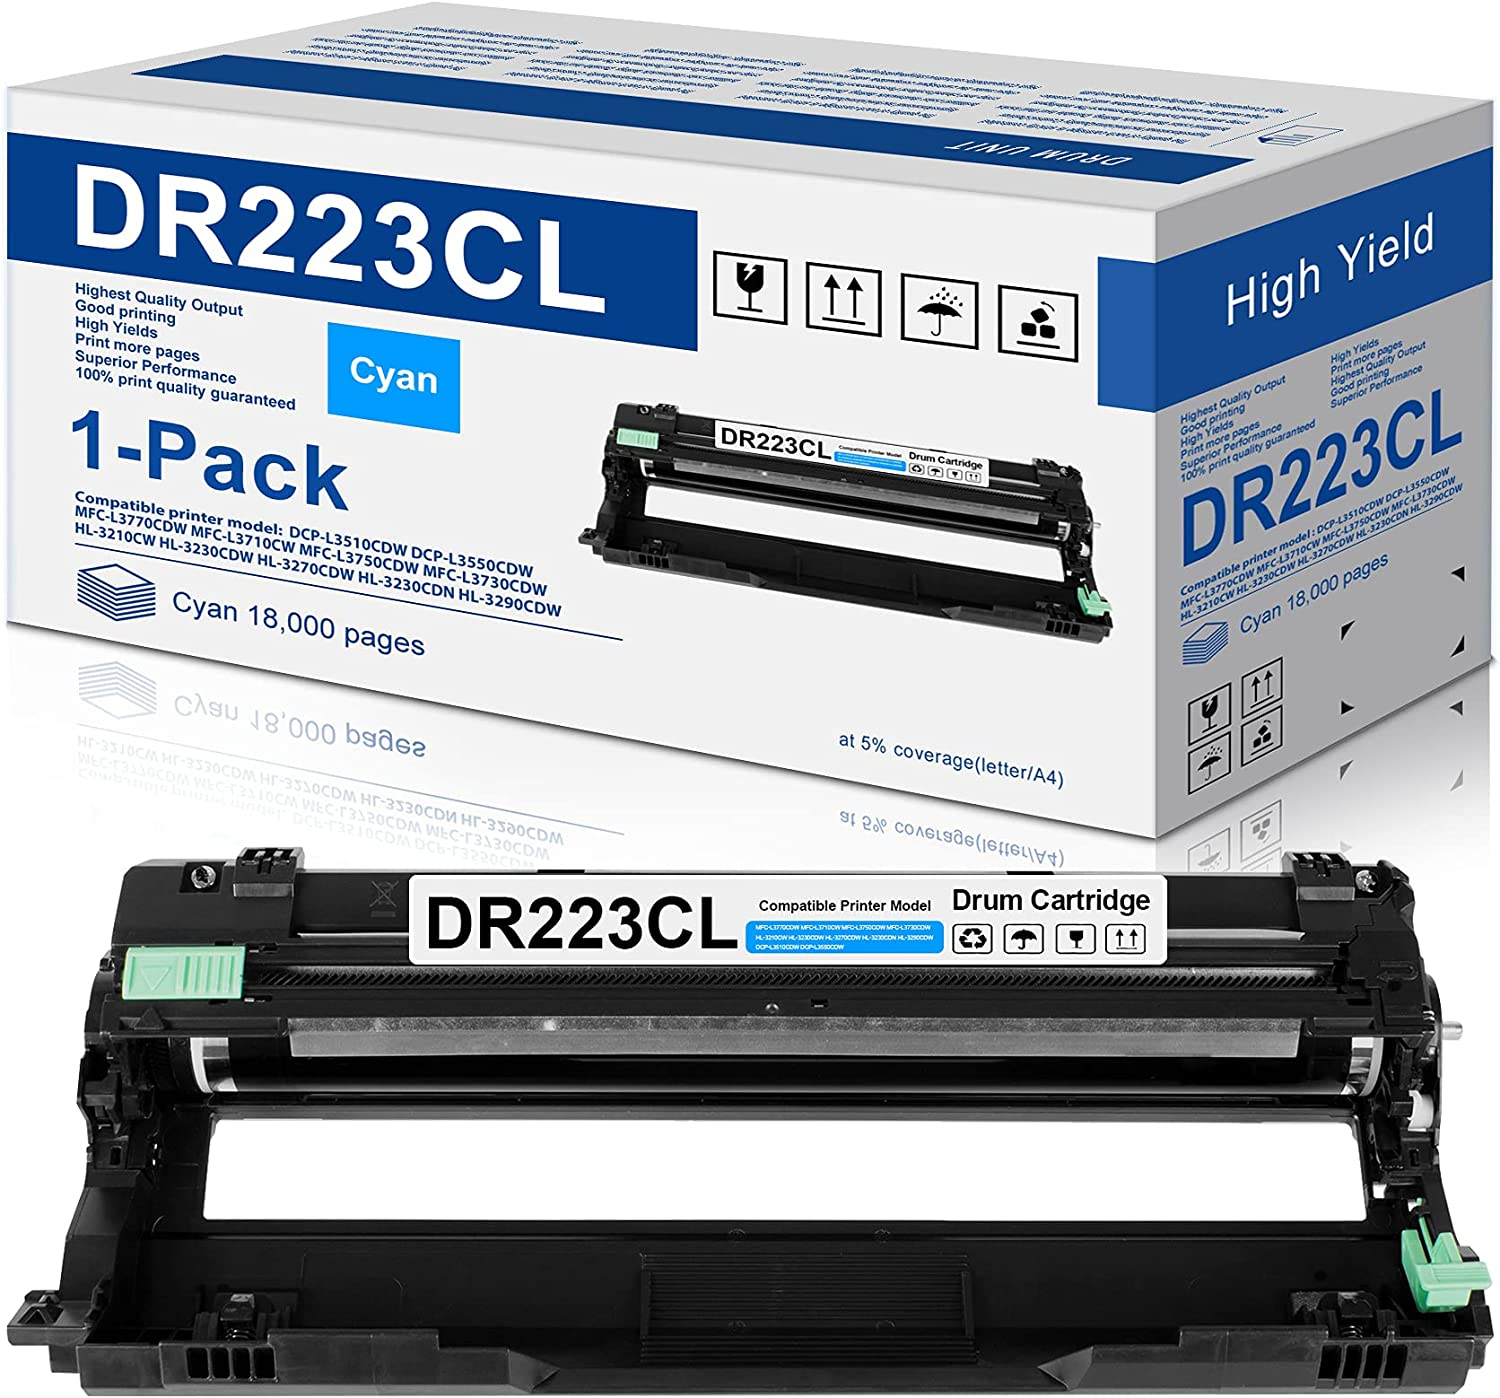 1-Pack Cyan Compatible DR223CL Drum Unit Replacement for Brother DR-223CL Drum Works with Brother MFC-l3770CDW MFC-l3750CDW MFC-l3710CW HL-l3290CDW HL-l3270CDW HL-l3210CDW HL-L3230CDW Printer